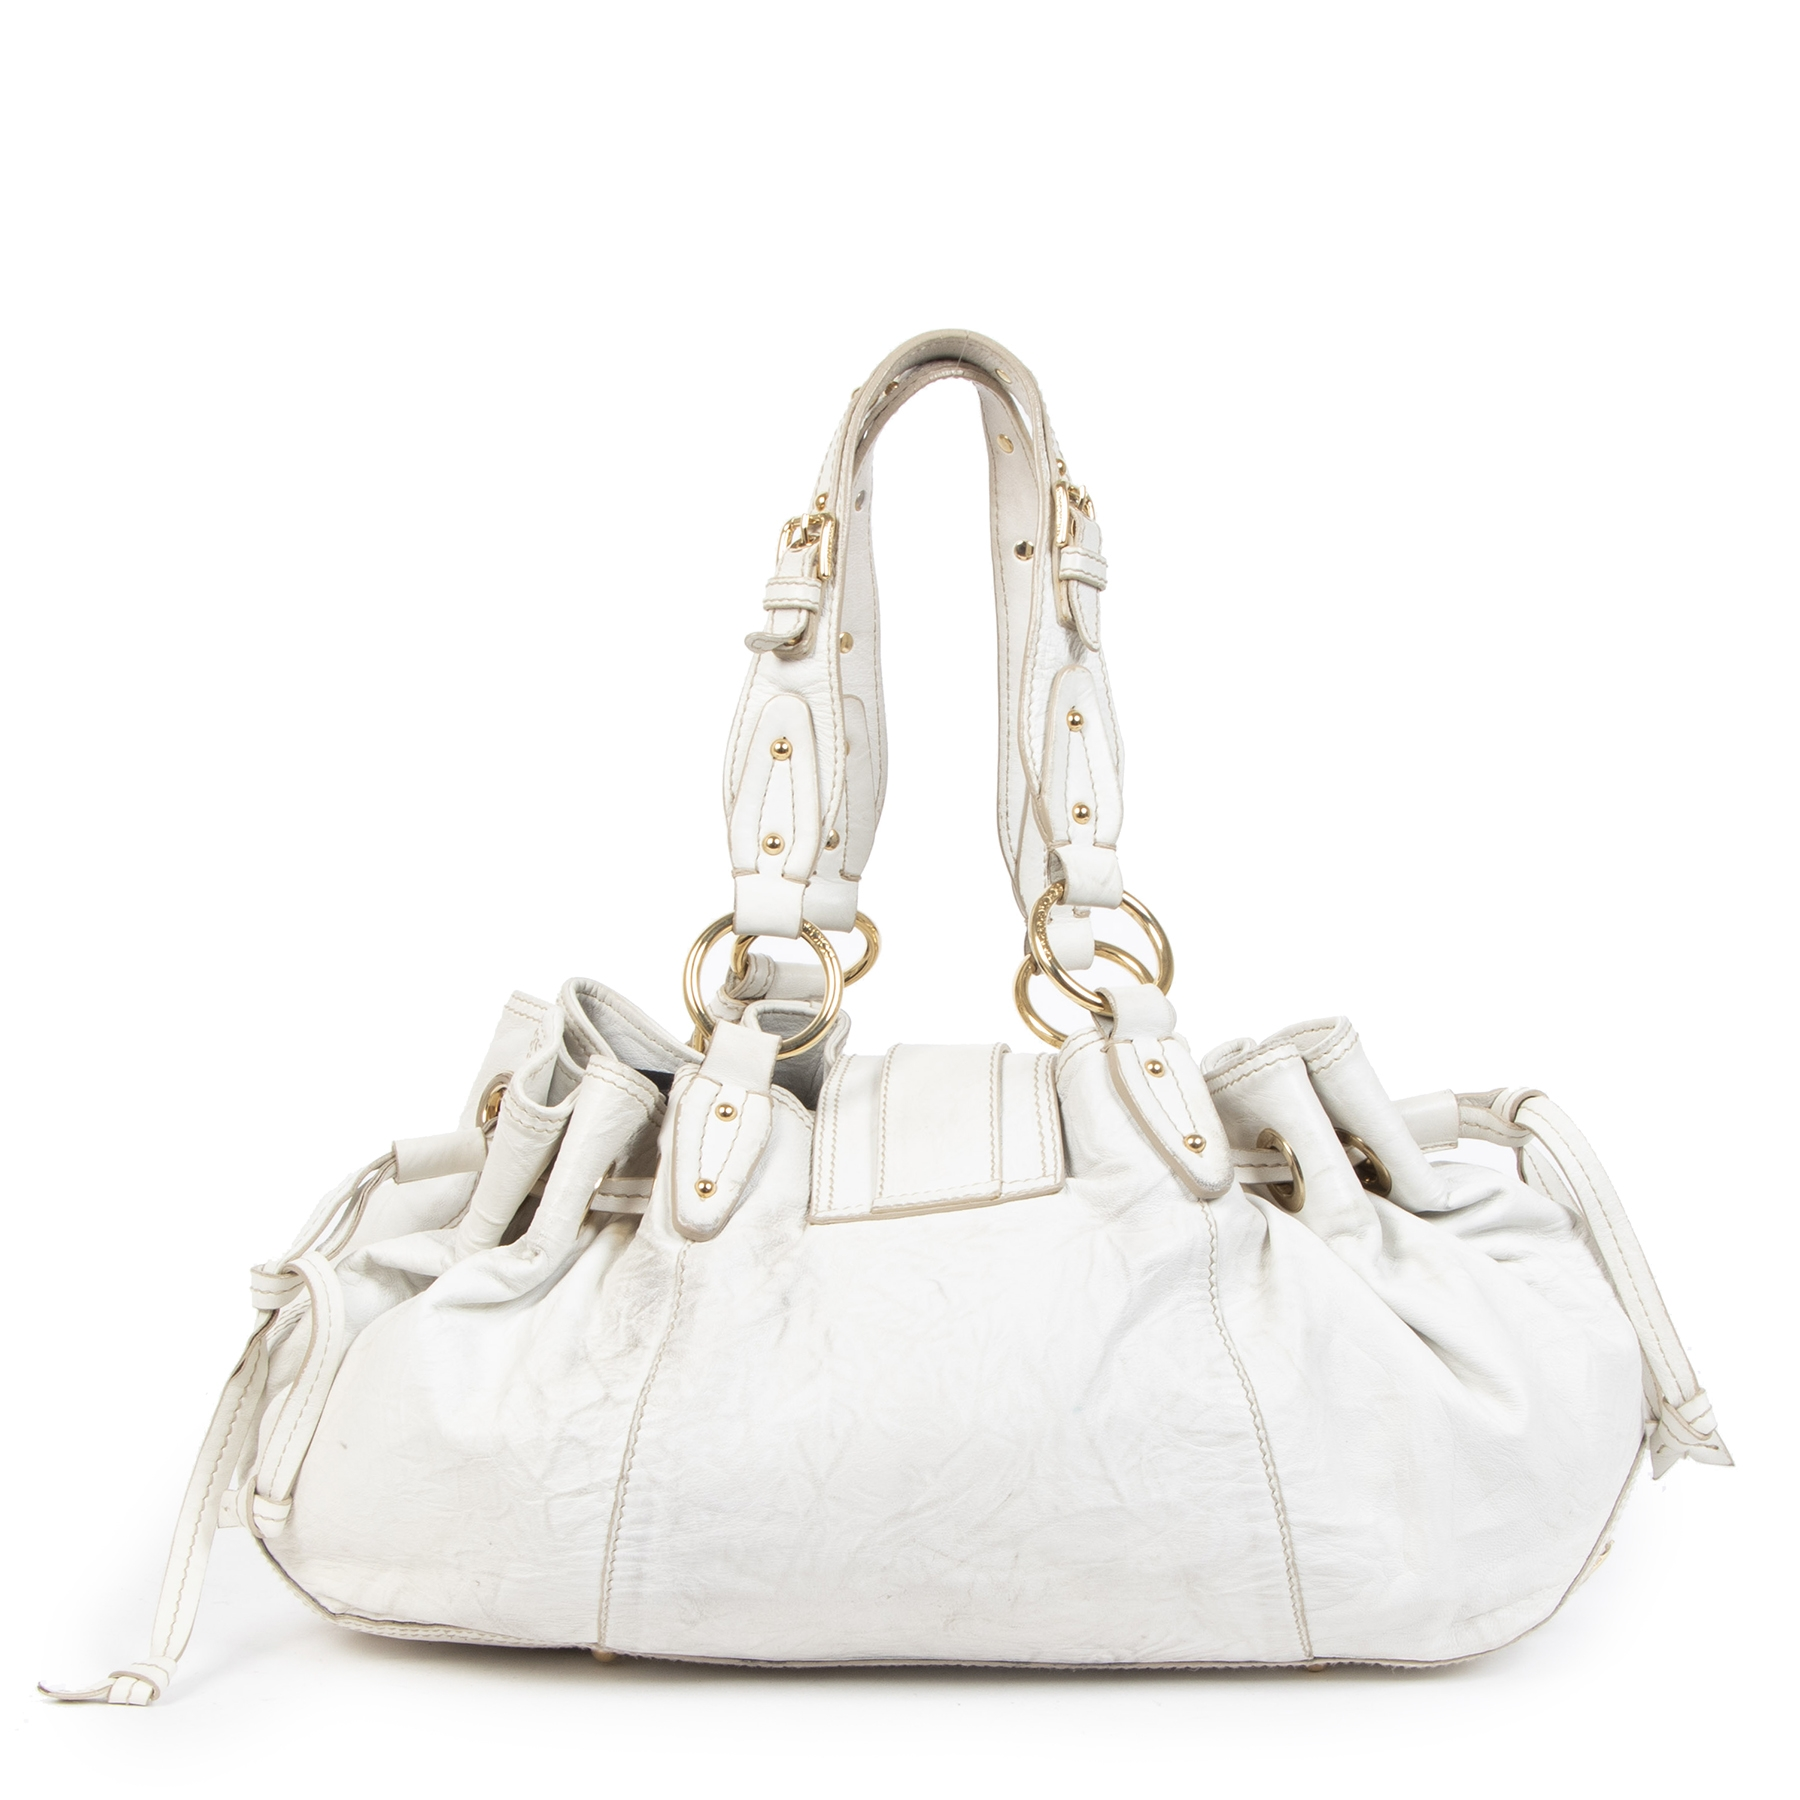 Authentique seconde-main vintage Dolce & Gabbana White Shoulder Bag achète en ligne webshop LabelLOV